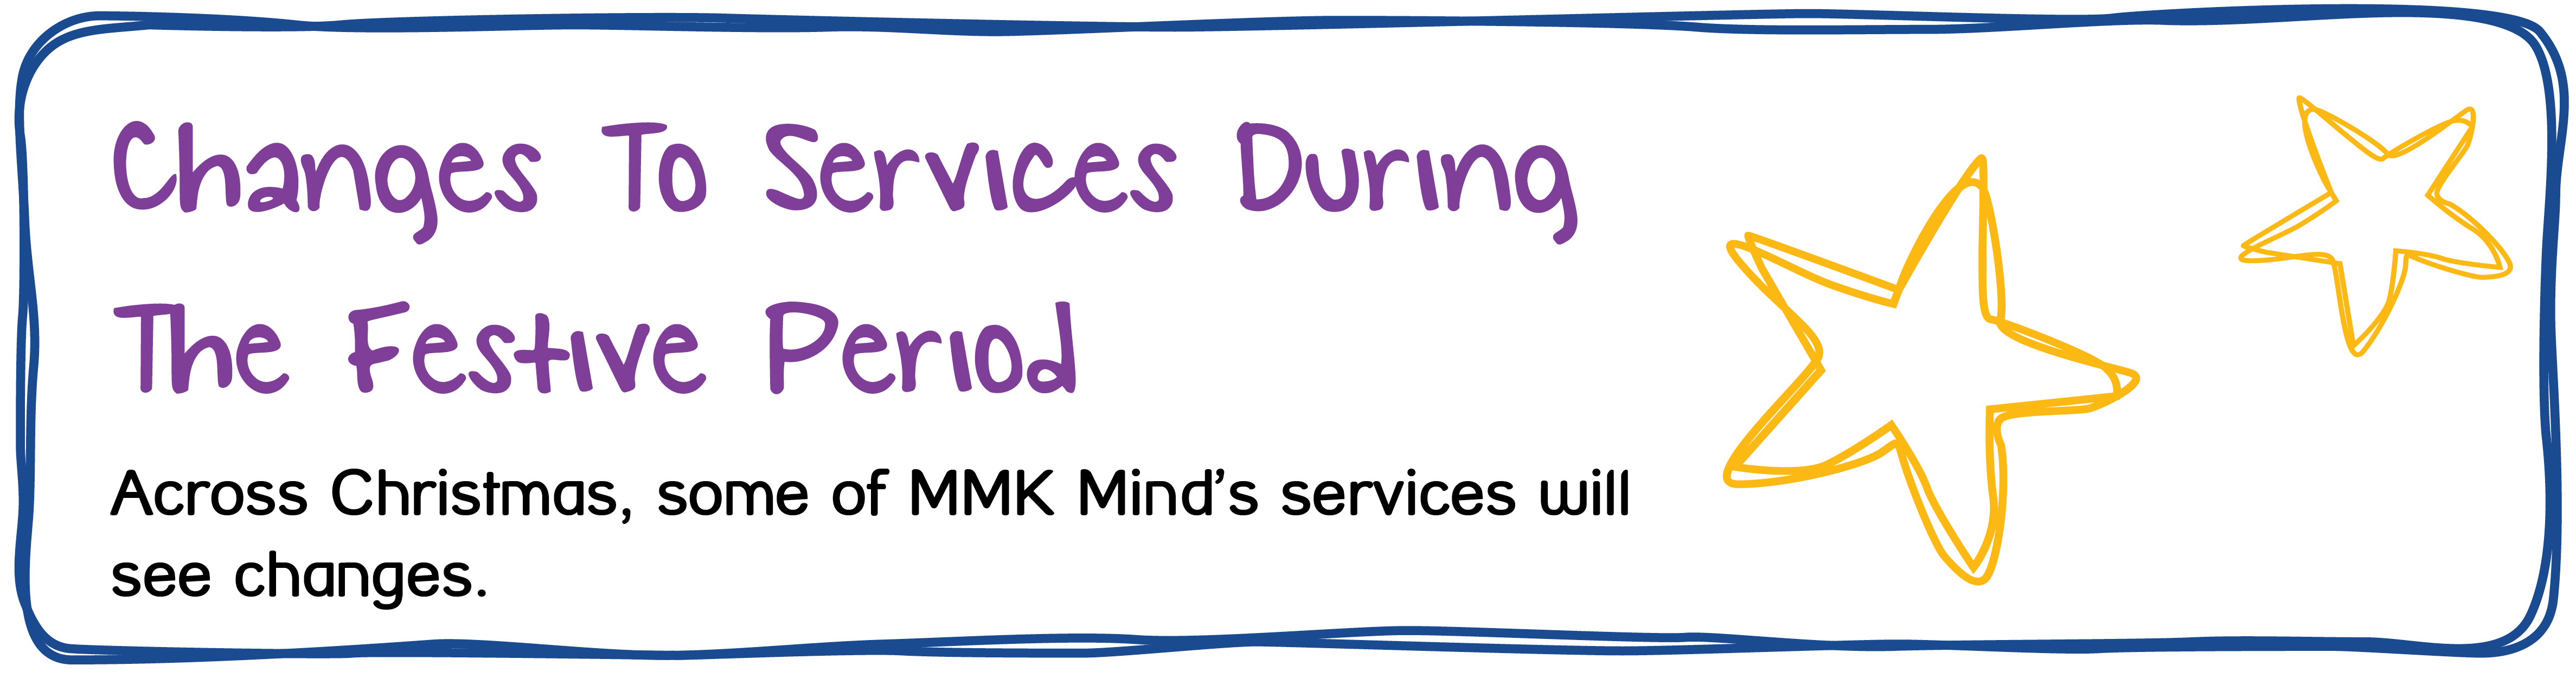 Changes to services during the festive period. Across Christmas, some of MMK Mind's services will see changes.